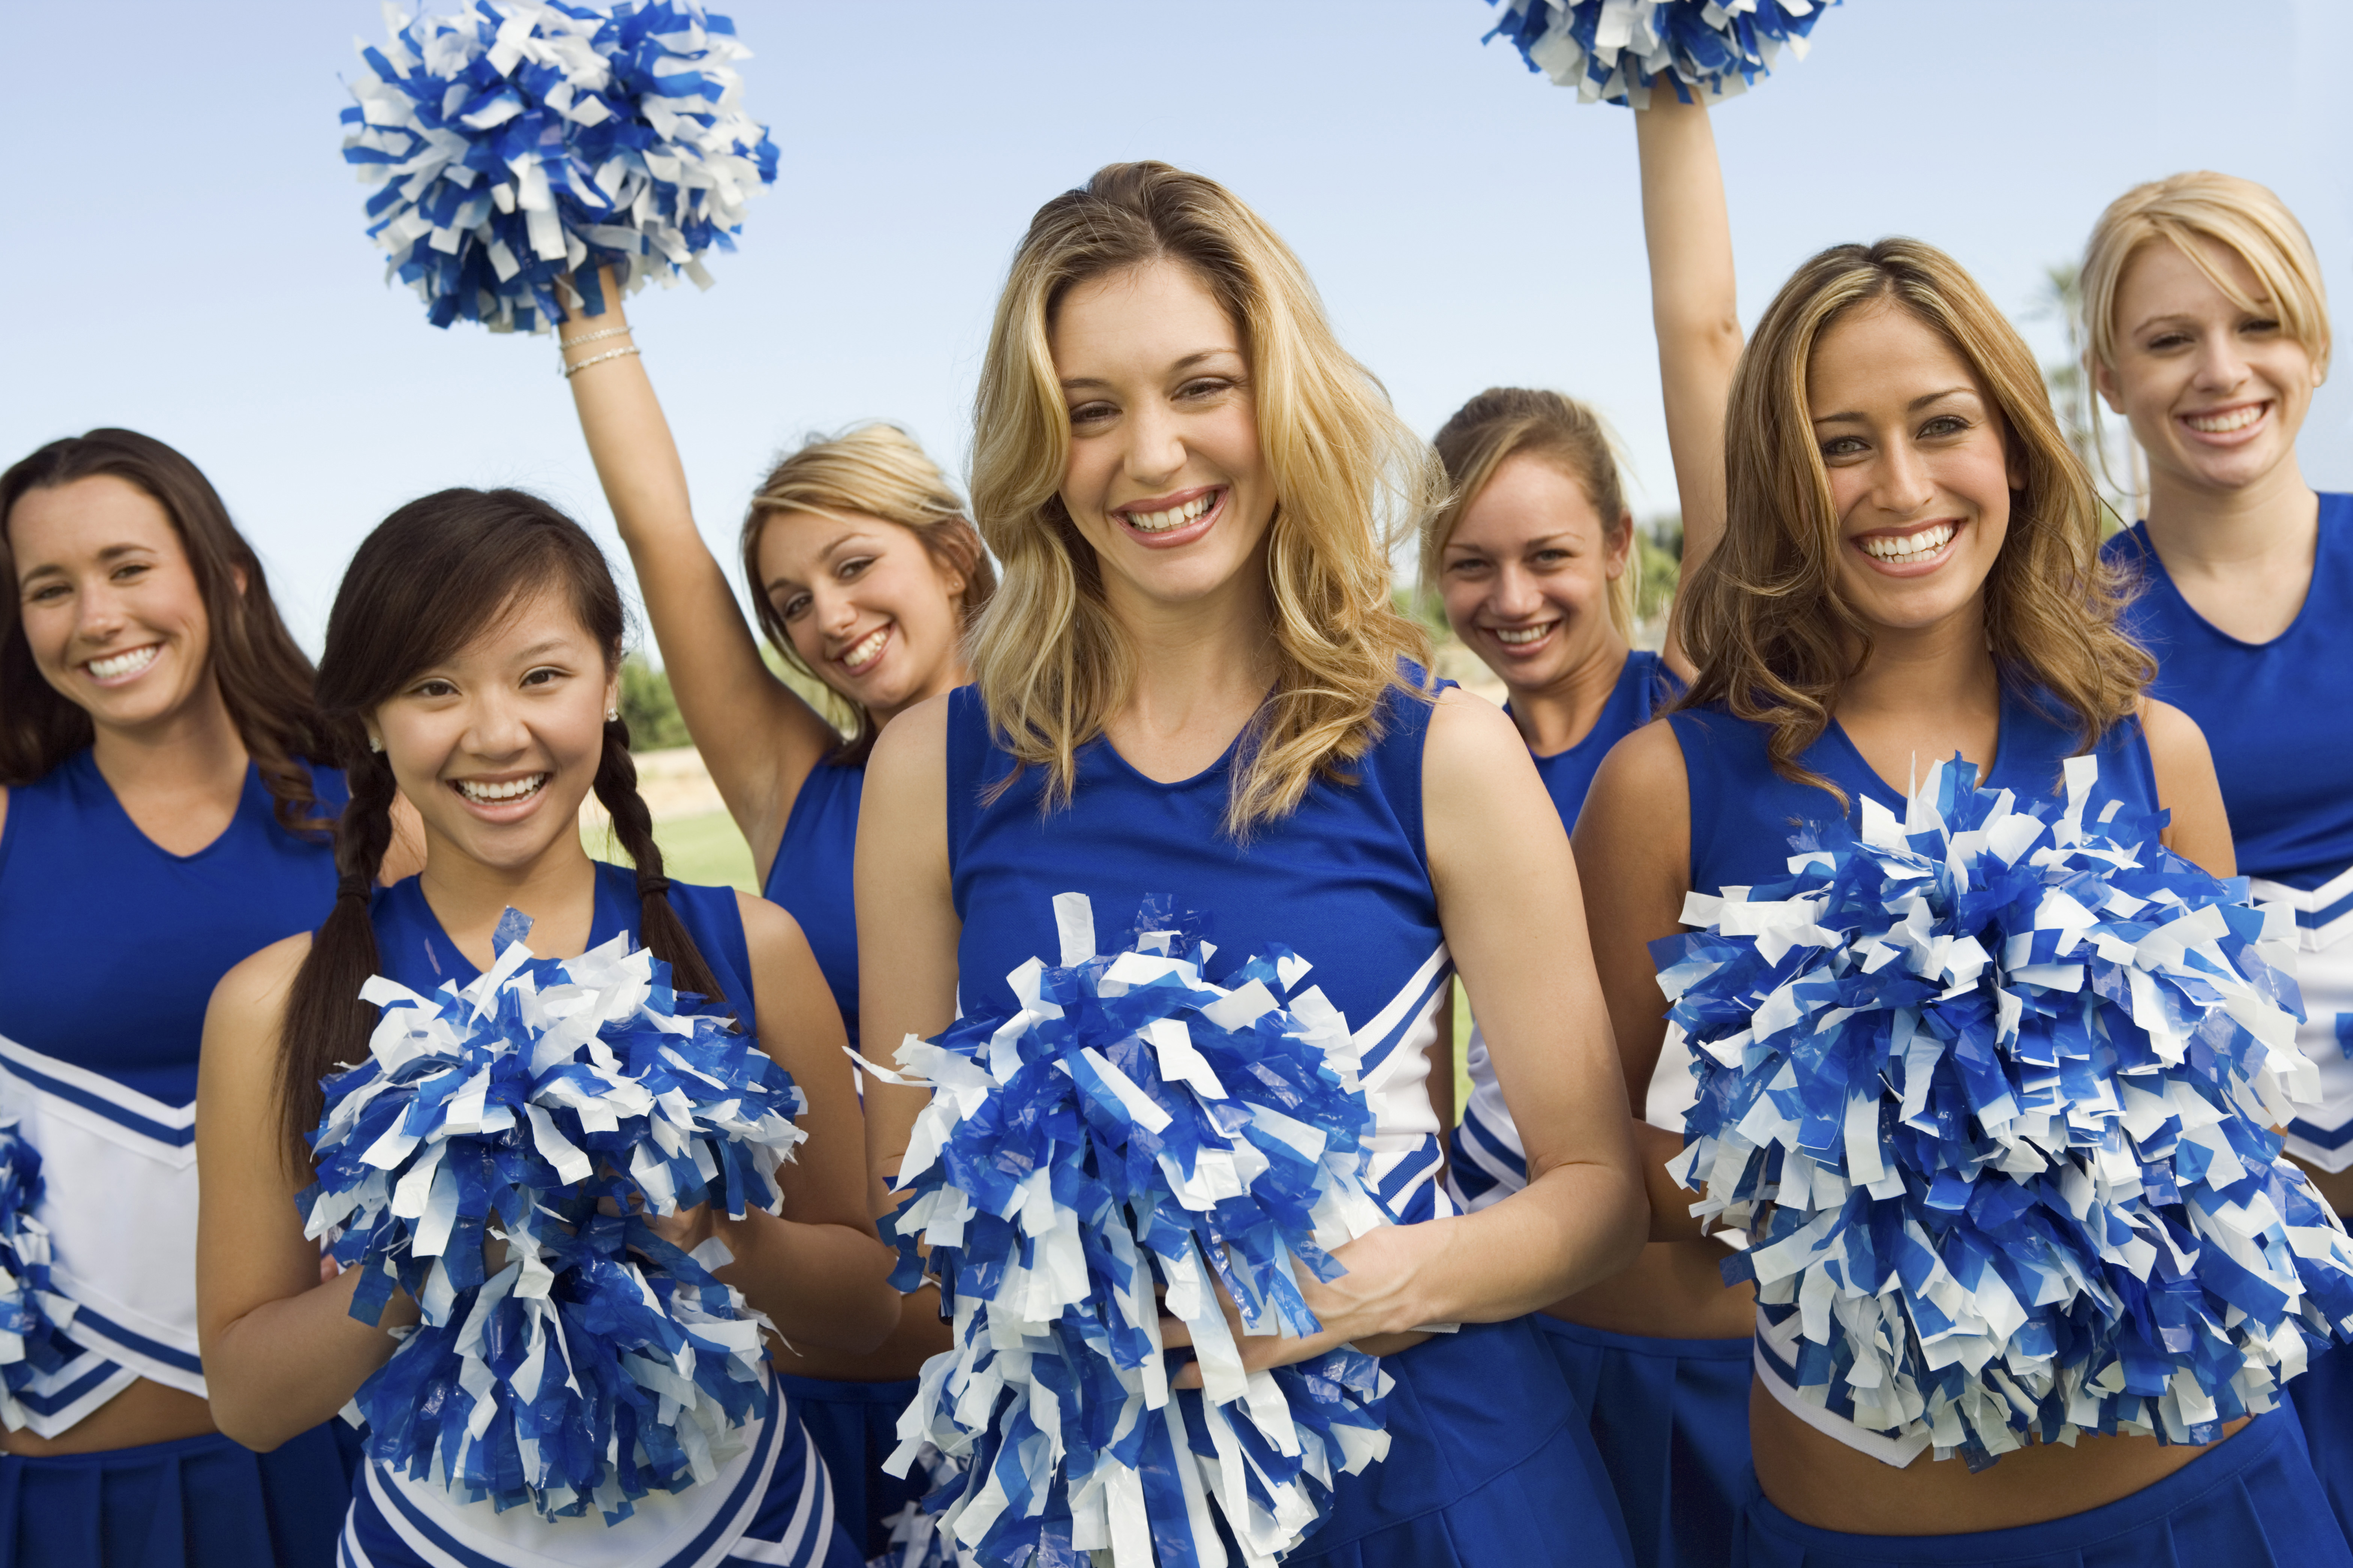 cheerleaders_109445891